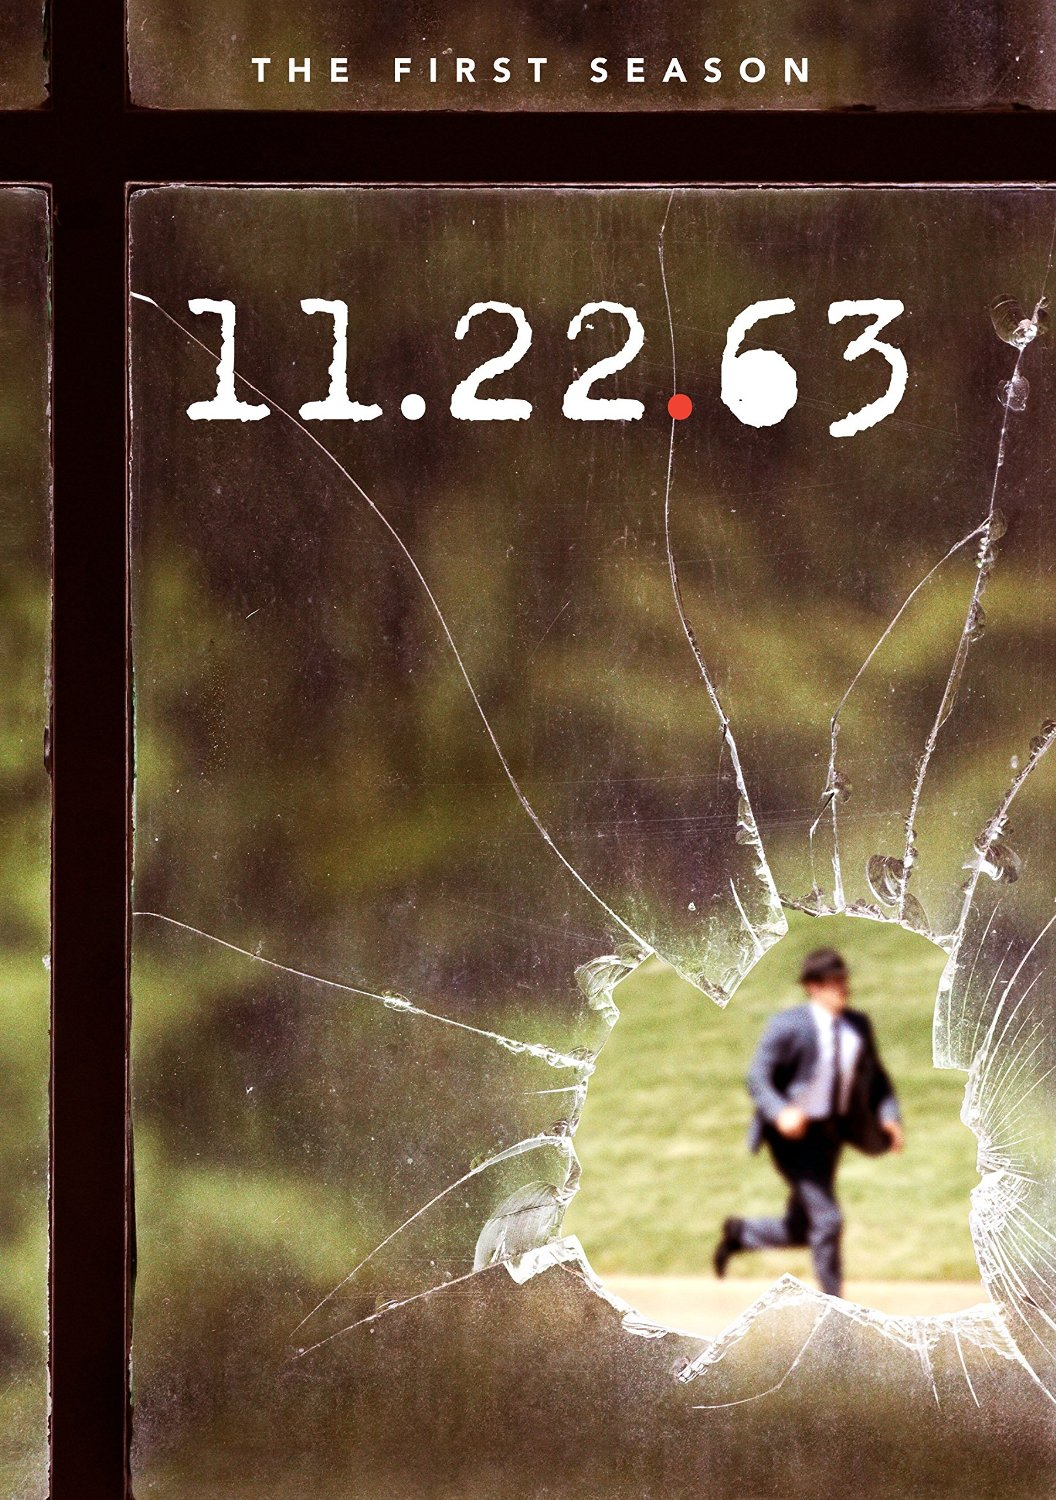 11.22.63 Blu-ray review: better than the book?